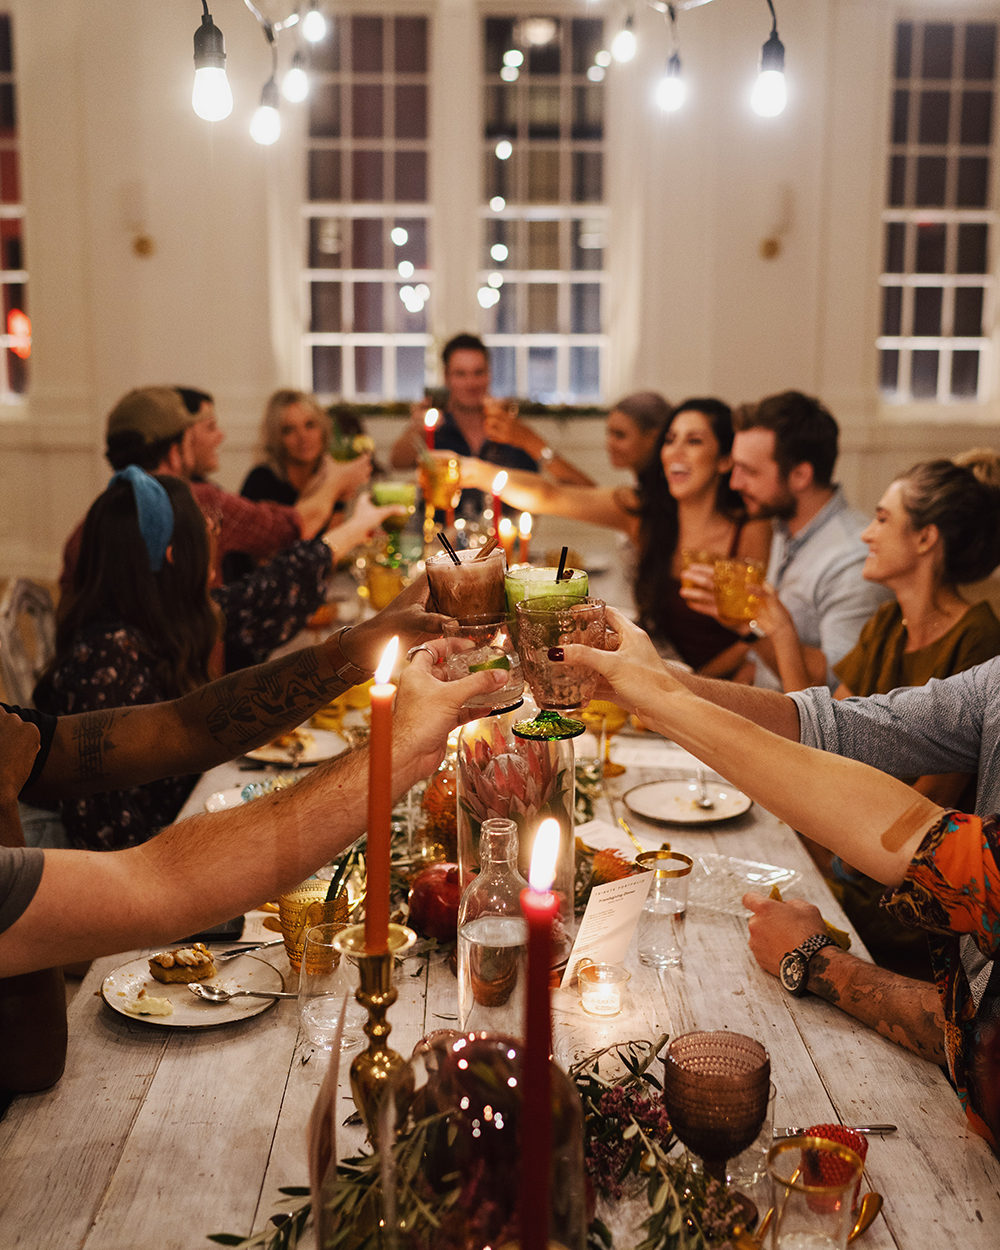 The Friendsgiving packages include overnight accommodations, a communal culinary experience, and more.